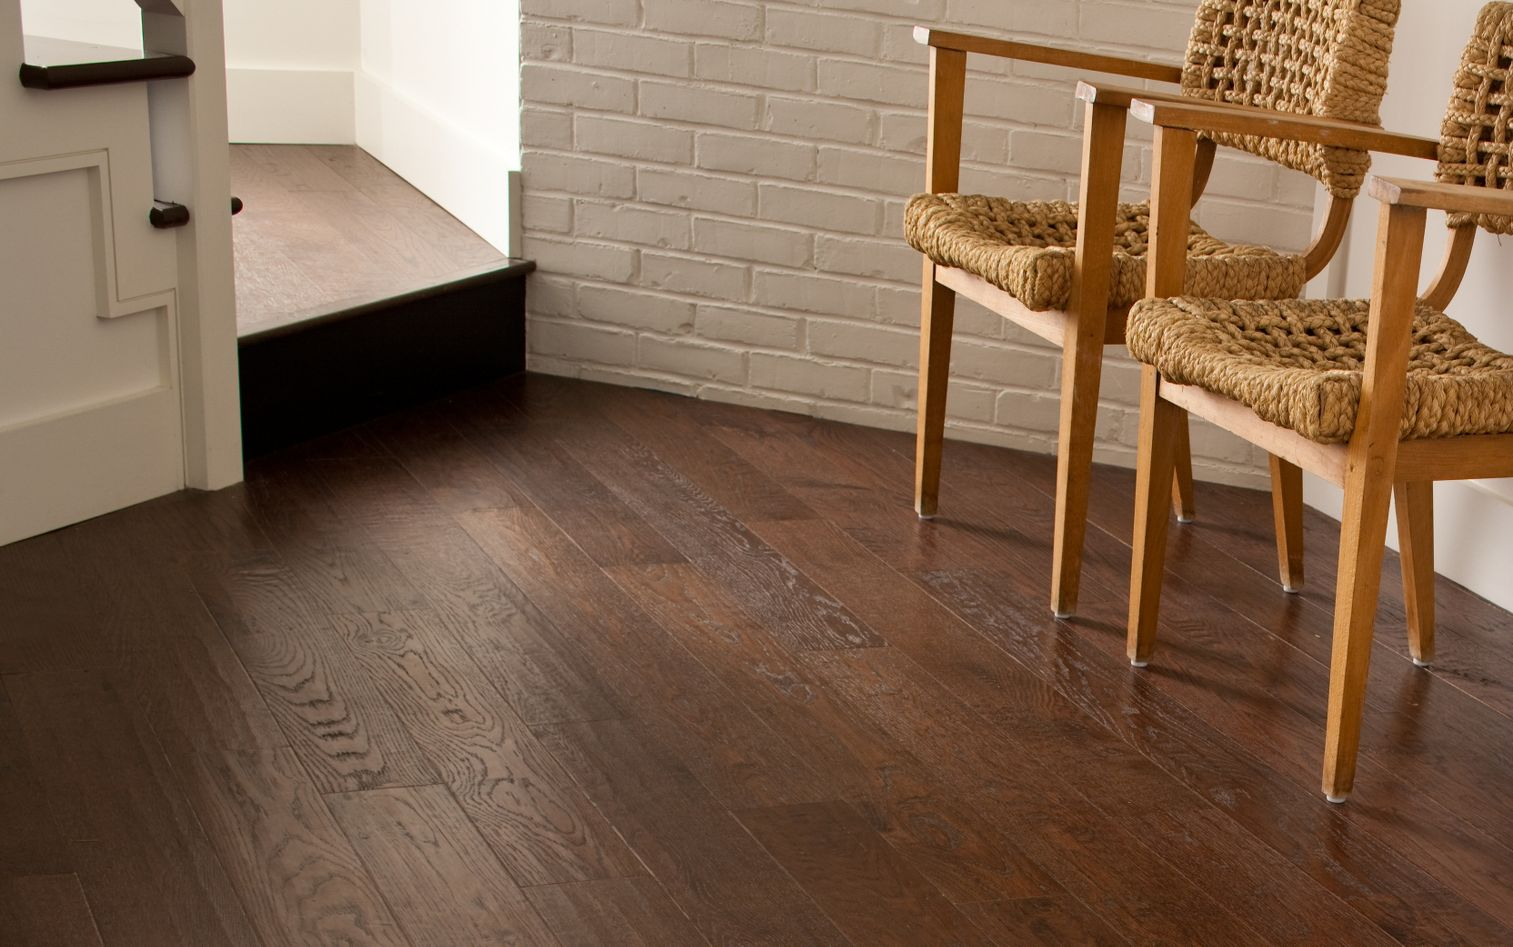 Choose Your Choice of Floors at Your Convenience with Floor Installation Services